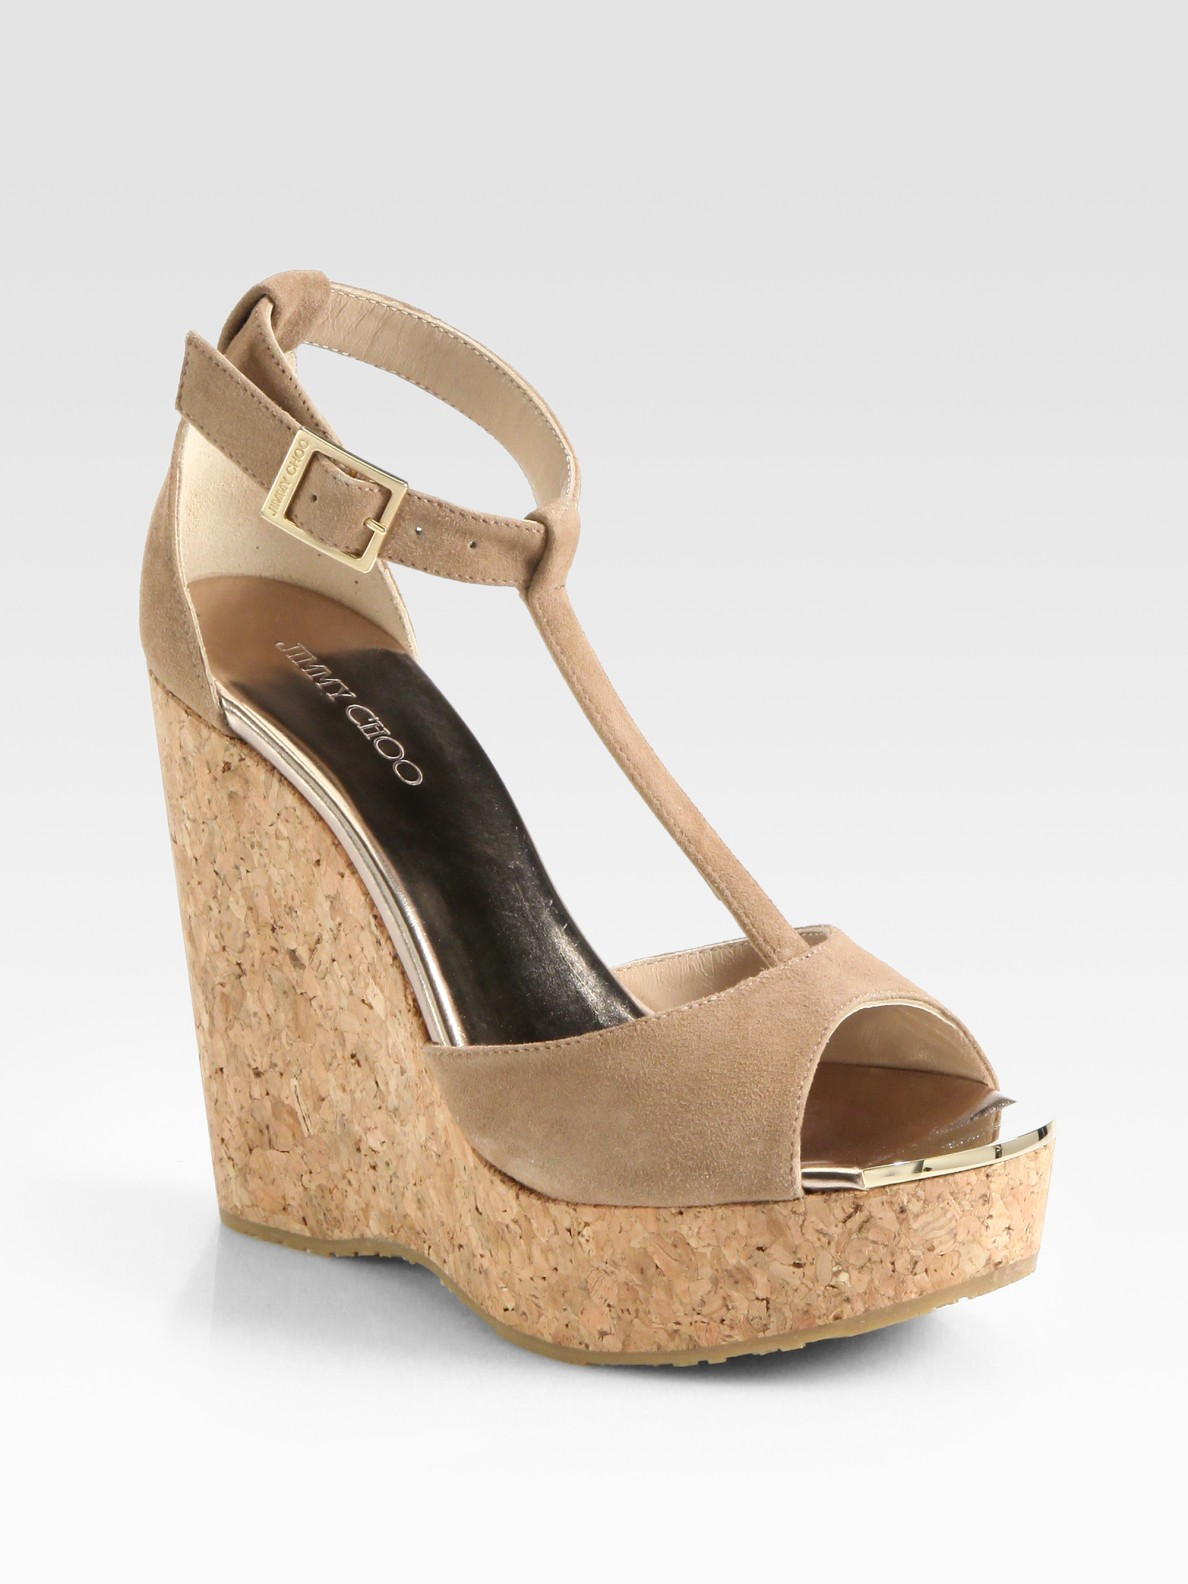 ada8d197a3c69 ... buy lyst jimmy choo pela suede tstrap cork wedge sandals in natural  1d8ef 8c8ef